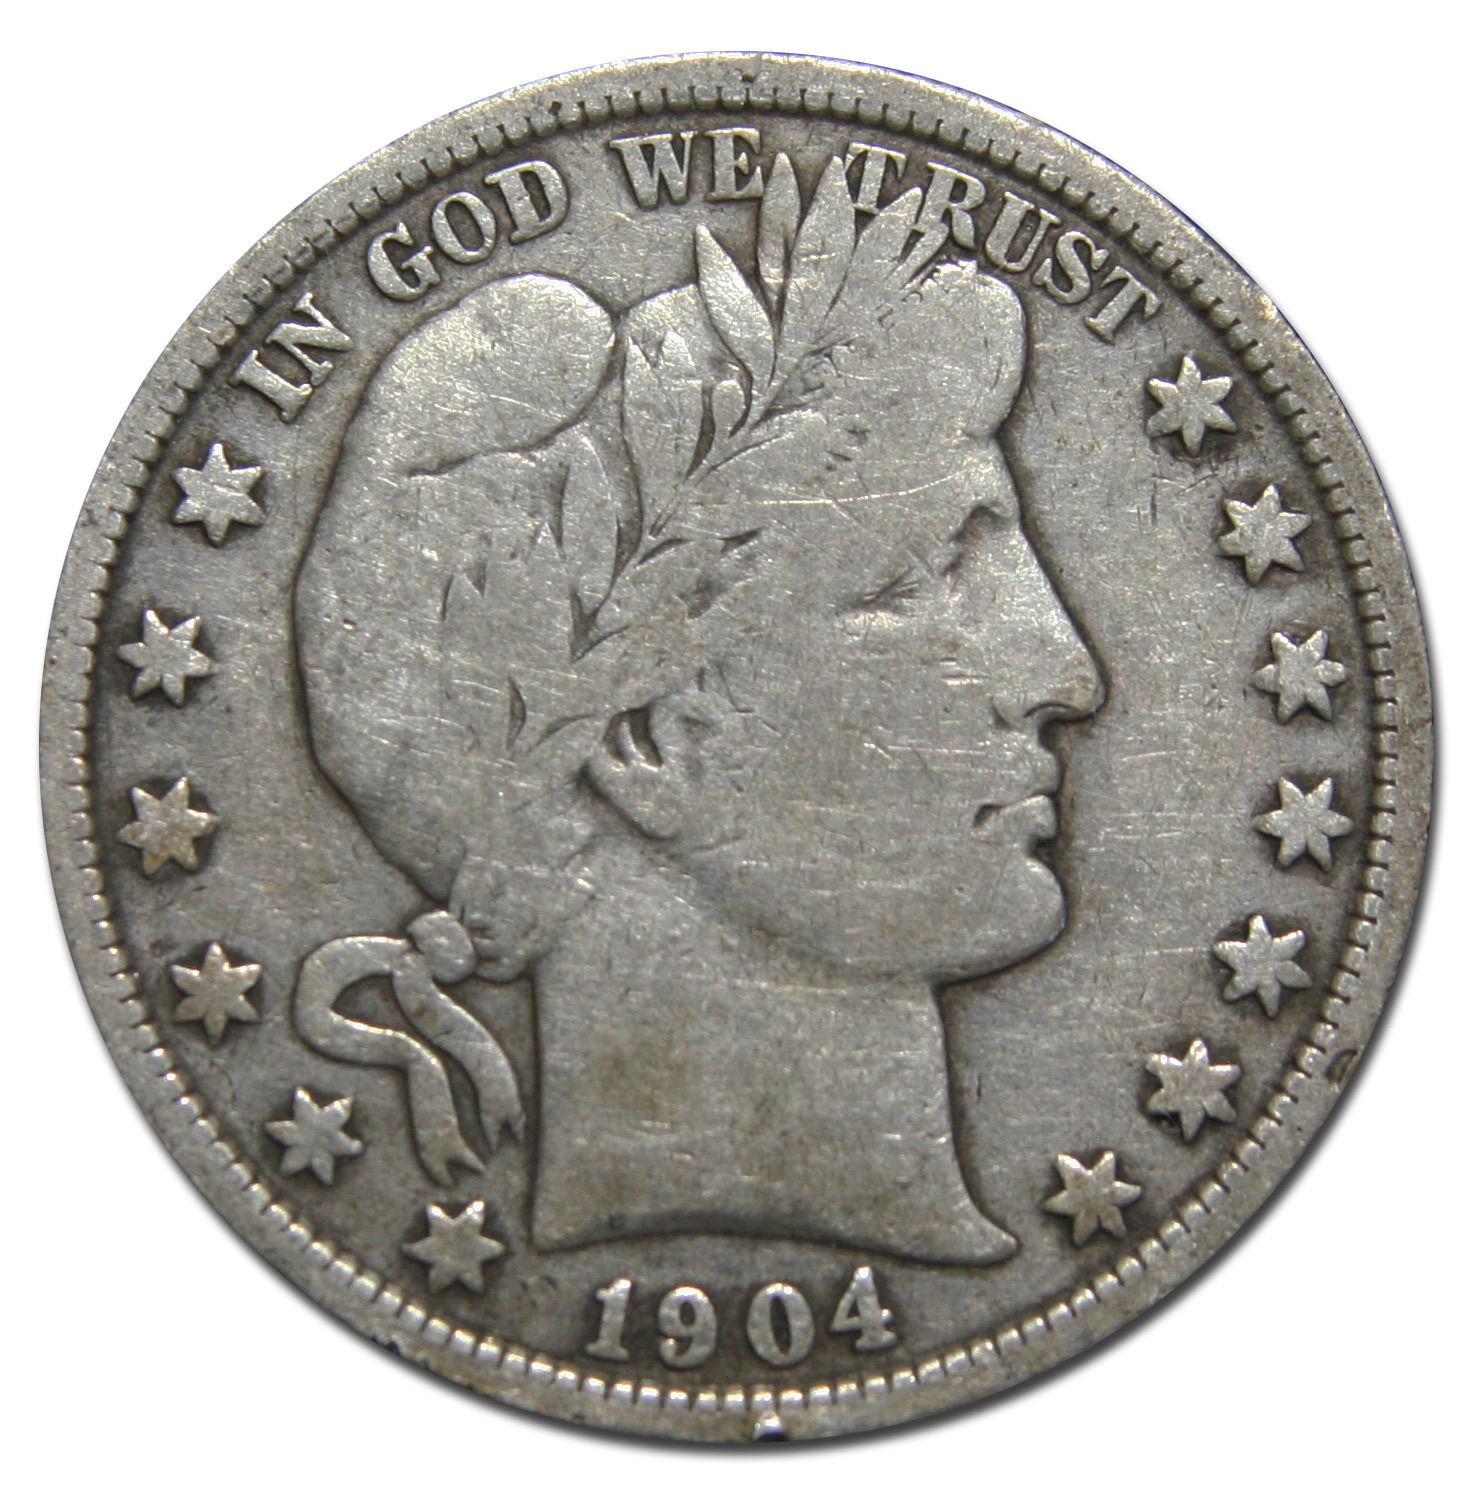 1904 Liberty Barber Head Half Dollar 50¢ Silver Coin Lot MZ 3156